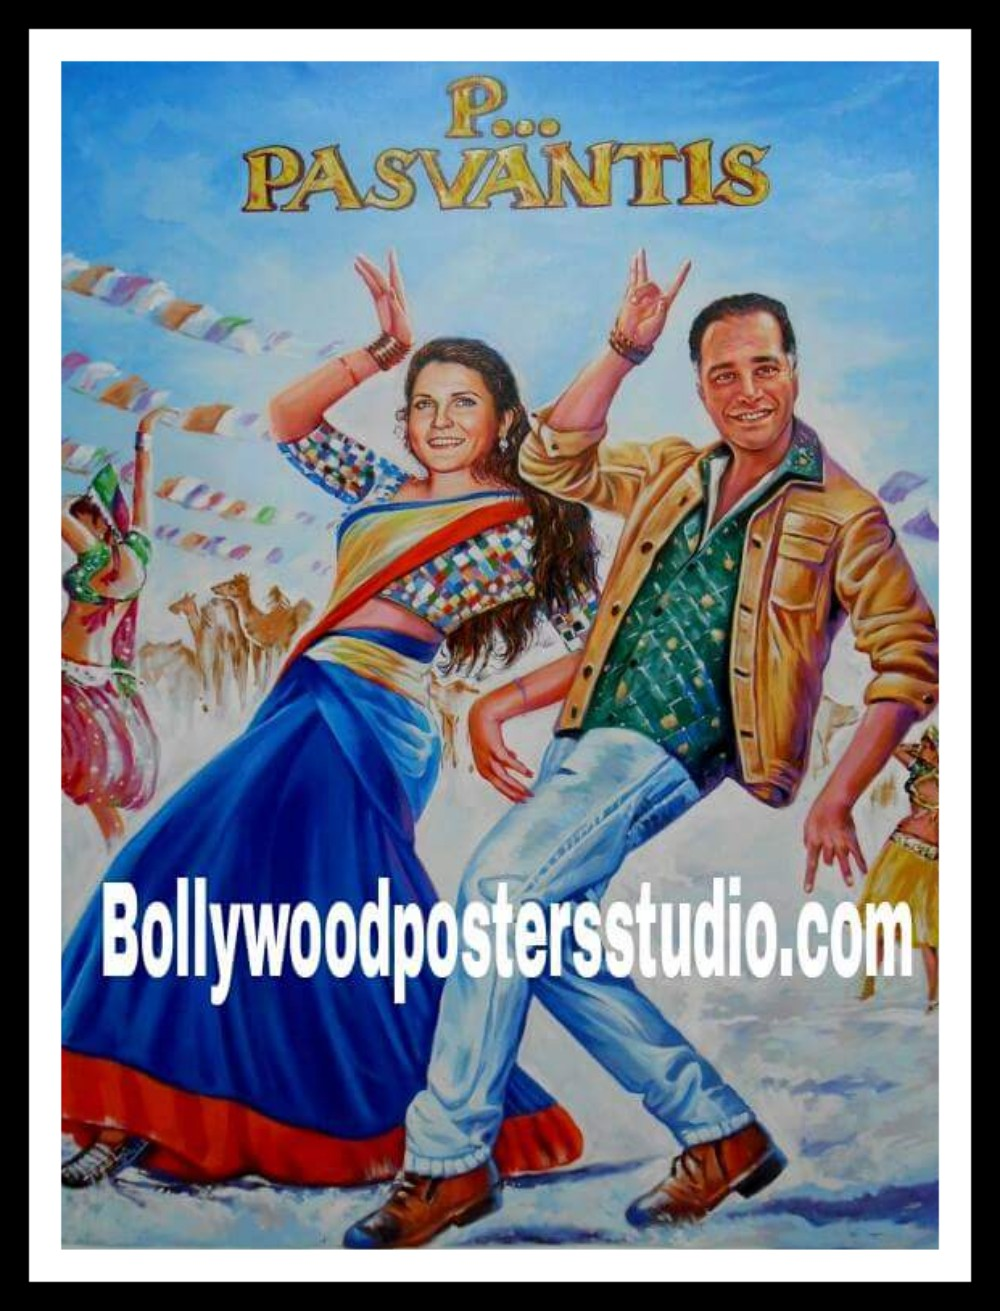 Make over with custom Bollywood poster